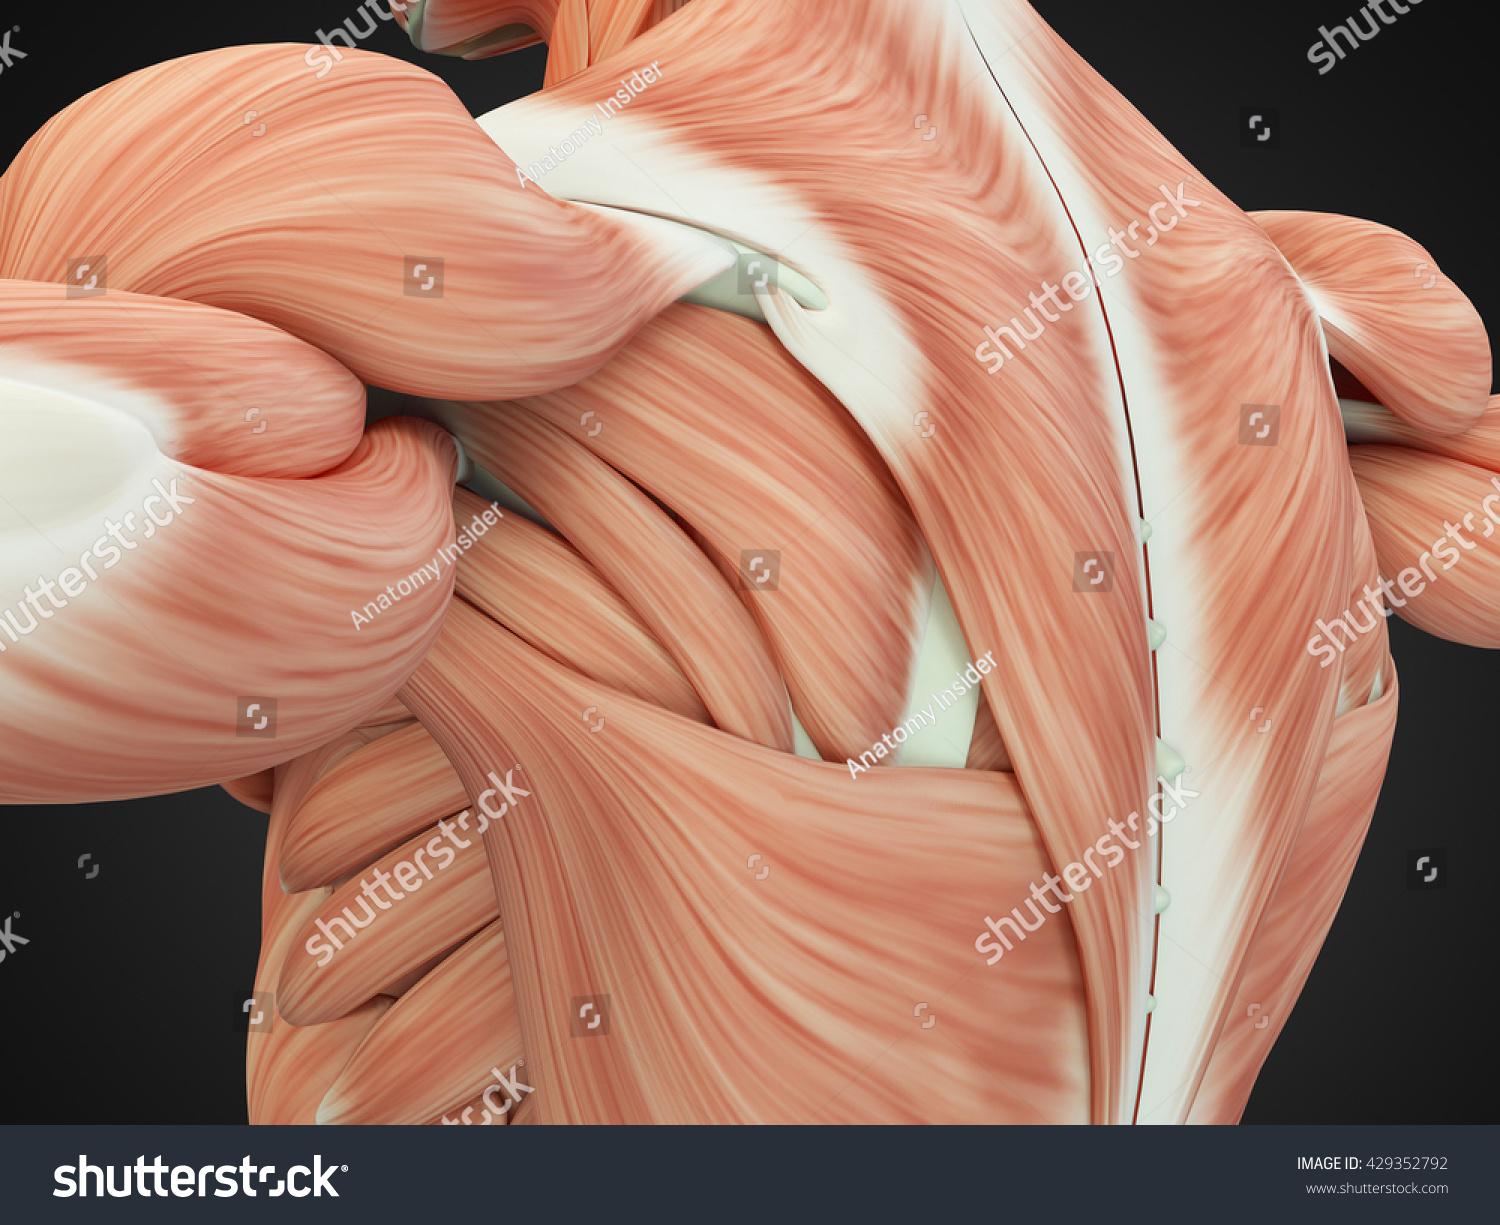 Human Anatomy Torso Back Shoulder Muscles Stock Illustration